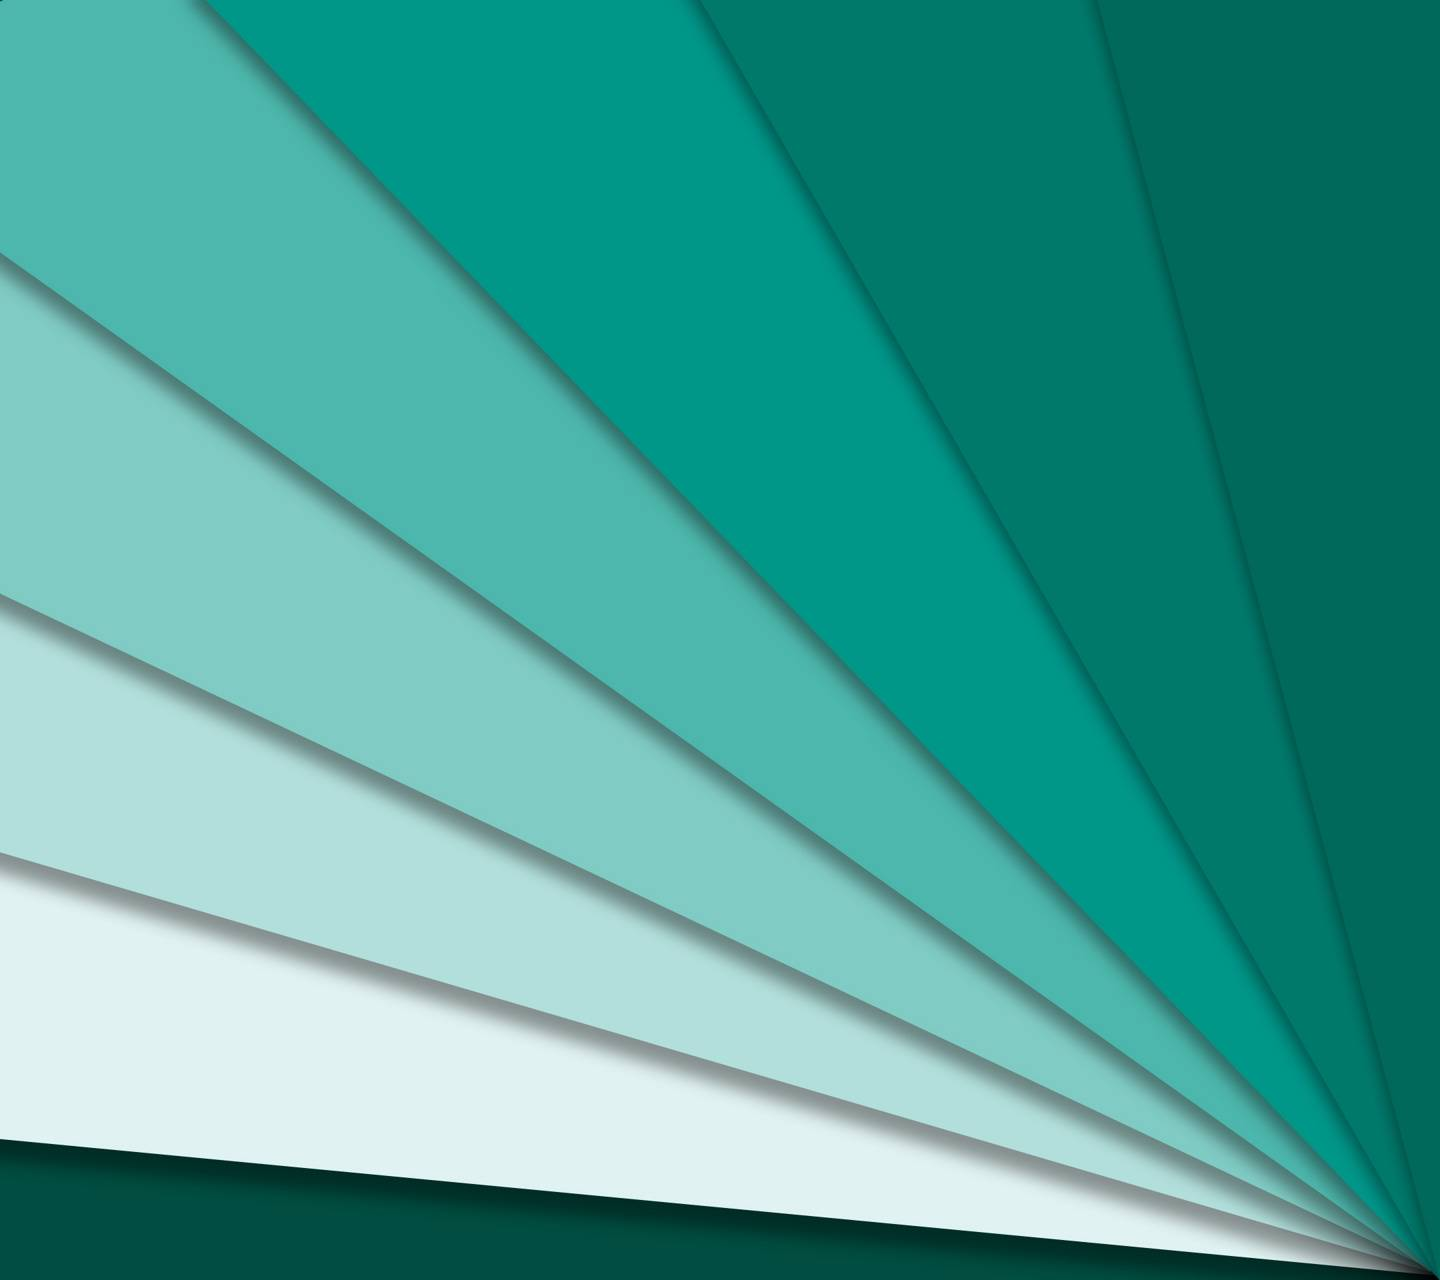 Teal Material Beams